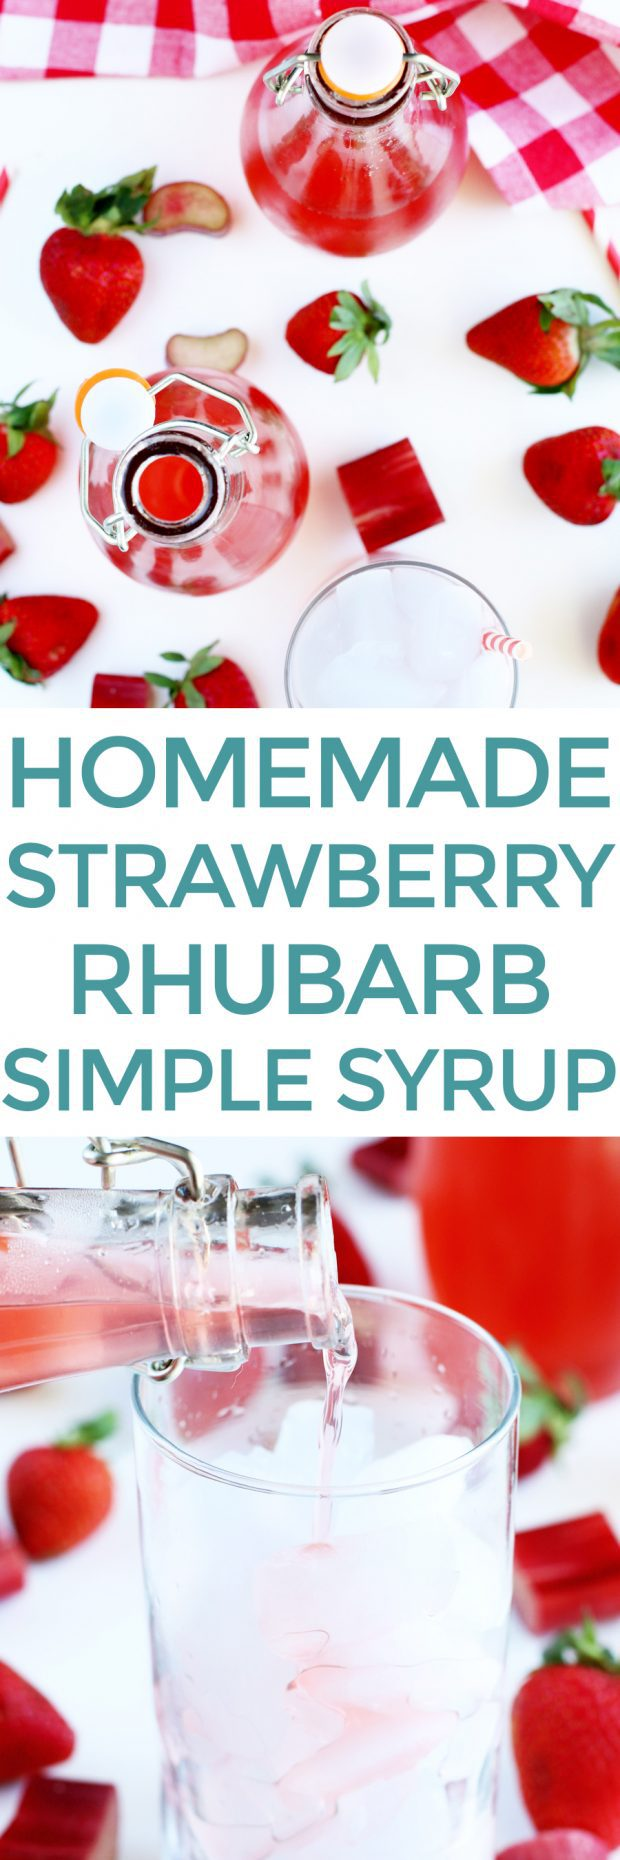 Homemade Strawberry Rhubarb Simple Syrup